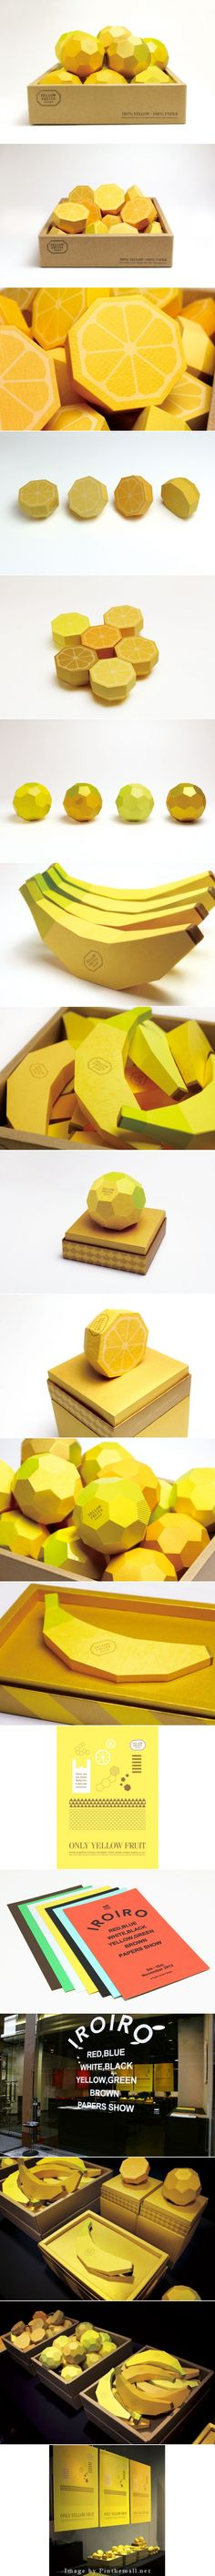 Some really cool yellow fruit packaging designs for the Irioro papers show by Safari Design curated by Packaging Diva PD